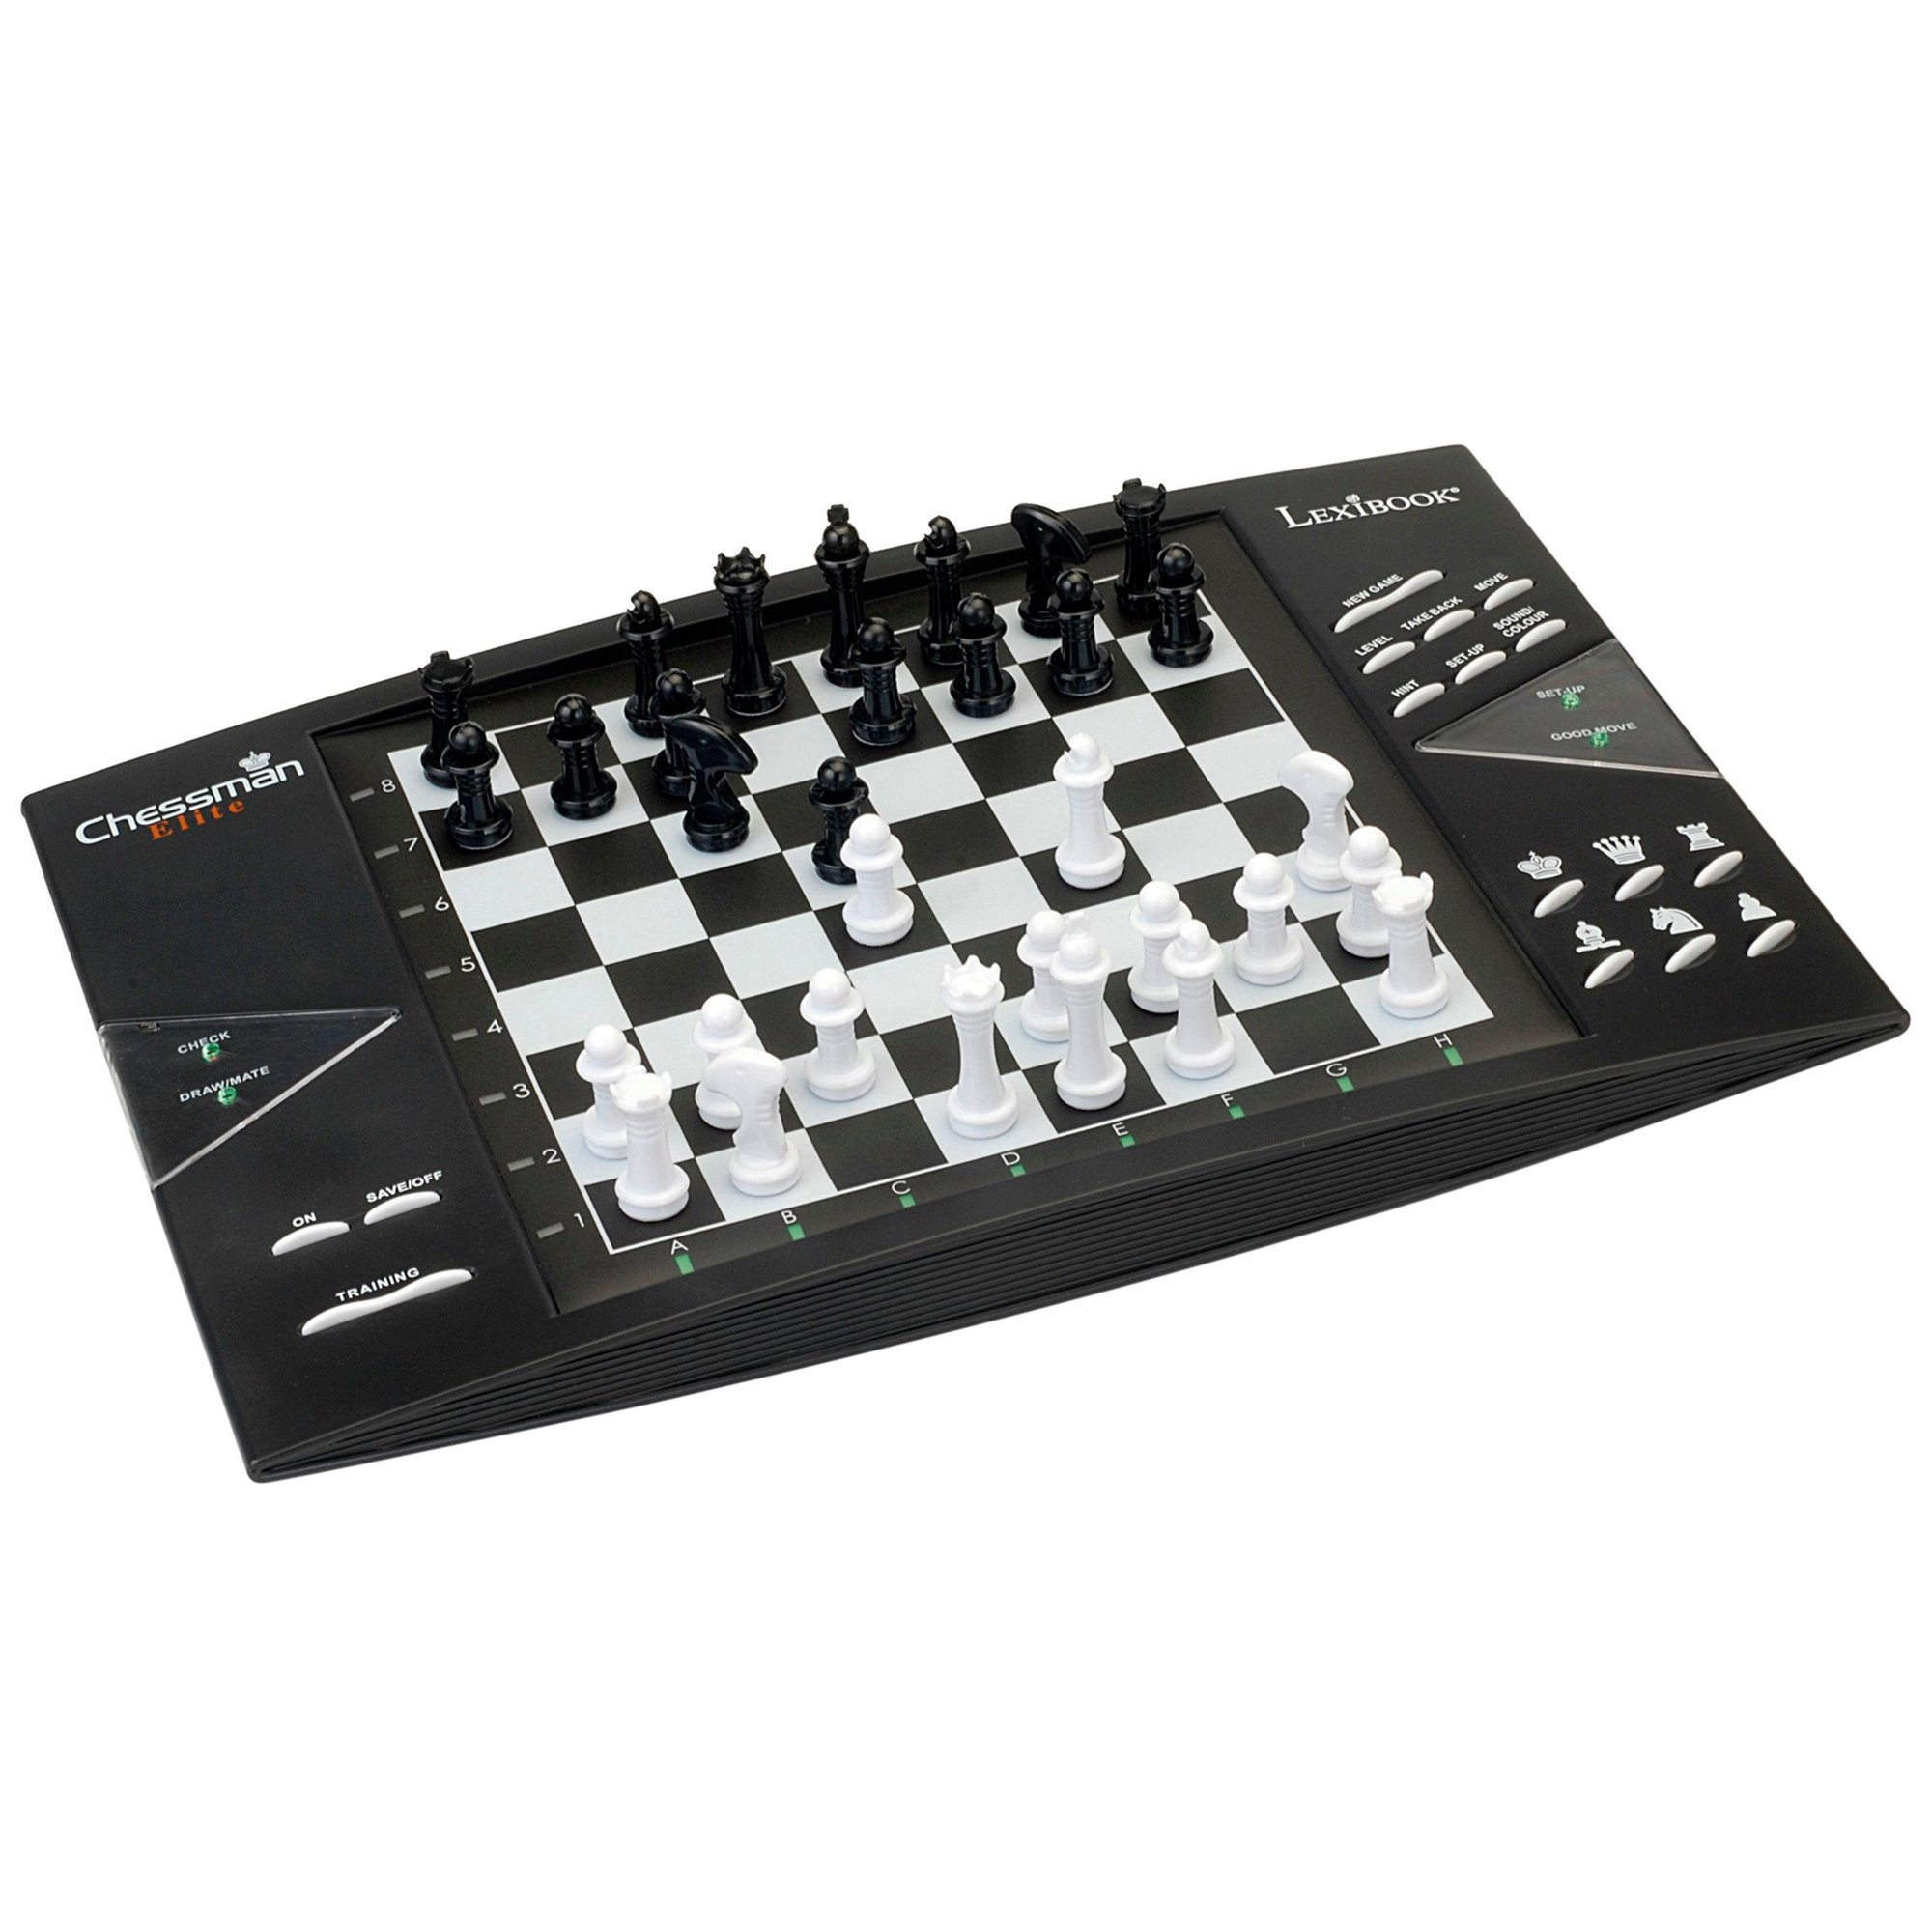 Image of Lexibook Chessman Elite Electronic Chess Game with Touch Sensitiv...